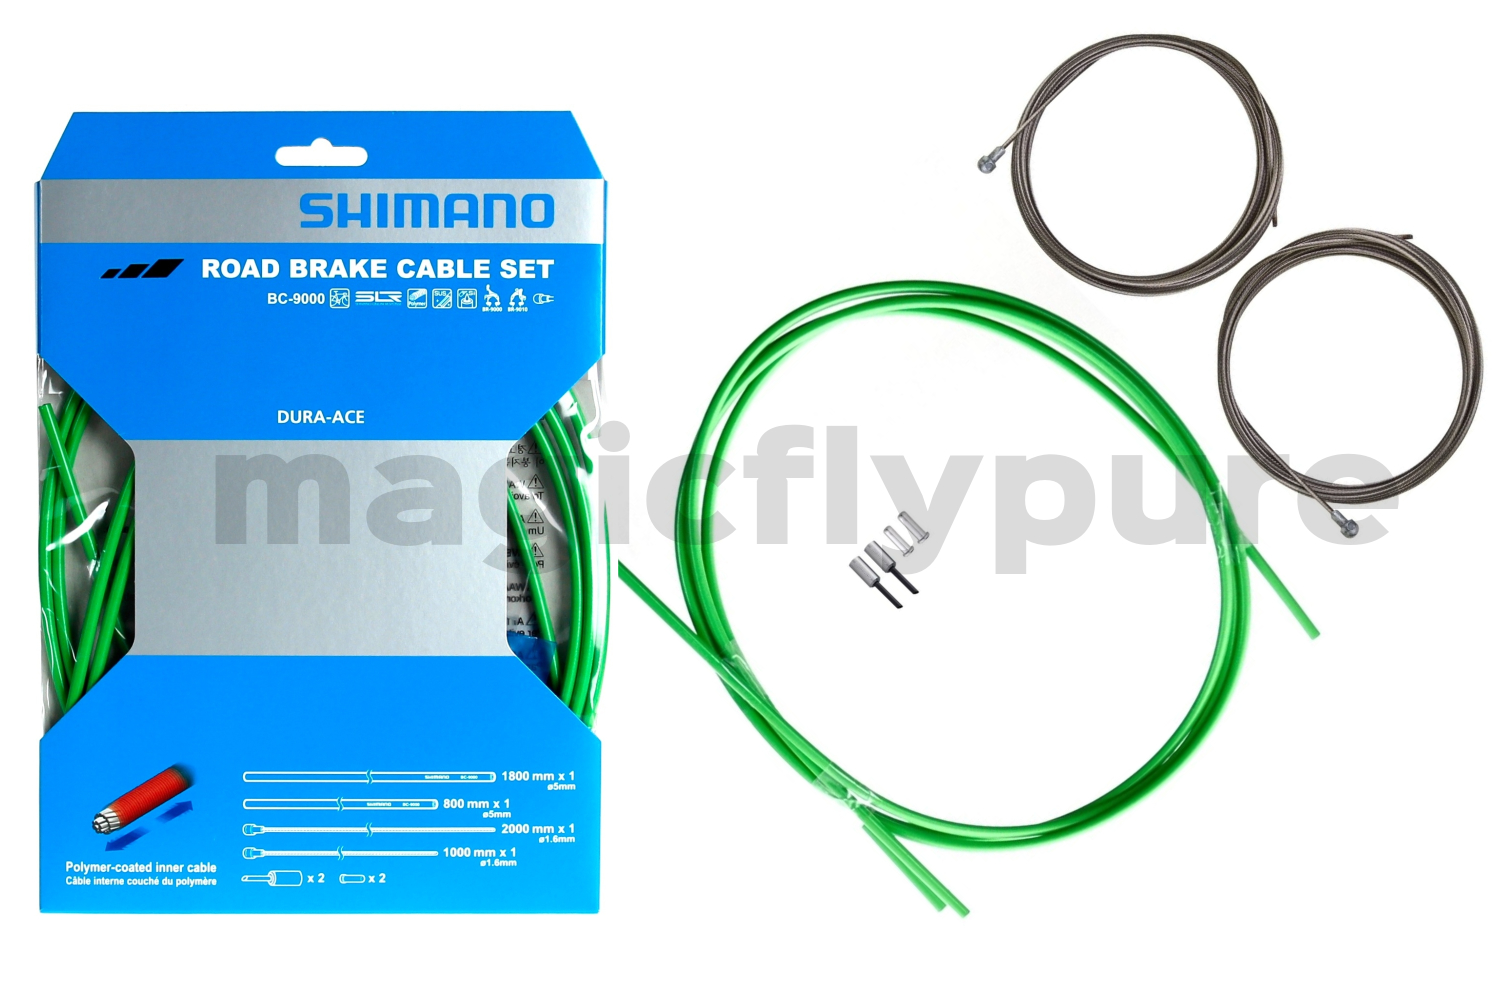 Shimano Dura-Ace BC-9000 SLR Polymer Coated Brake Inner Cable Outer Casing Set